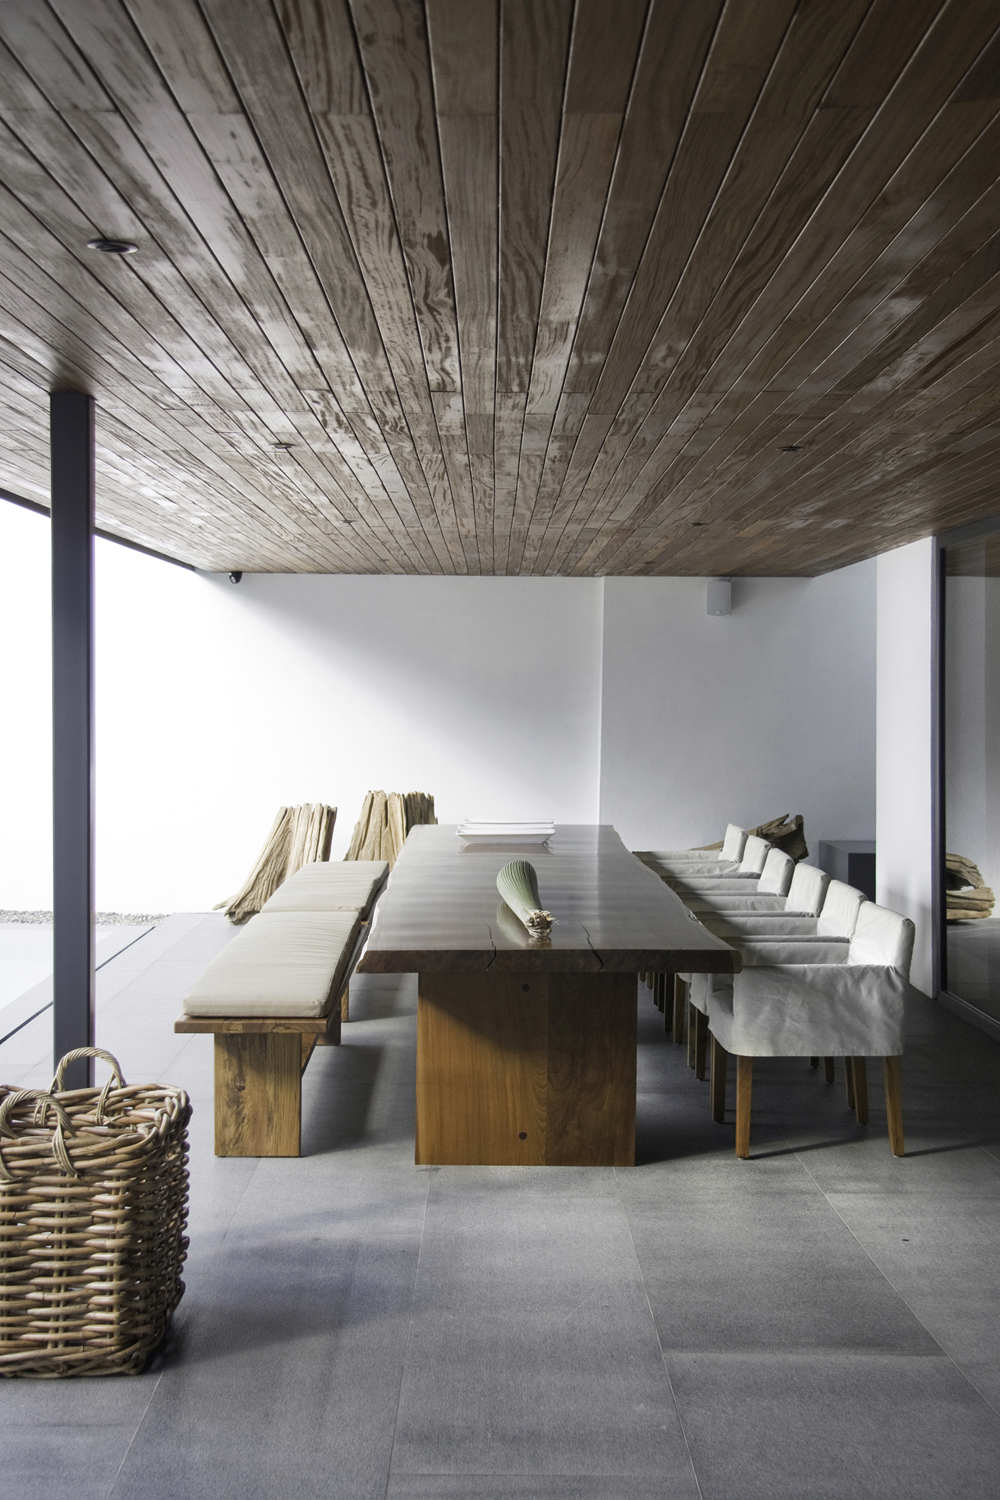 Wood Dining Table, Home Renovation in Guadalajara, Mexico